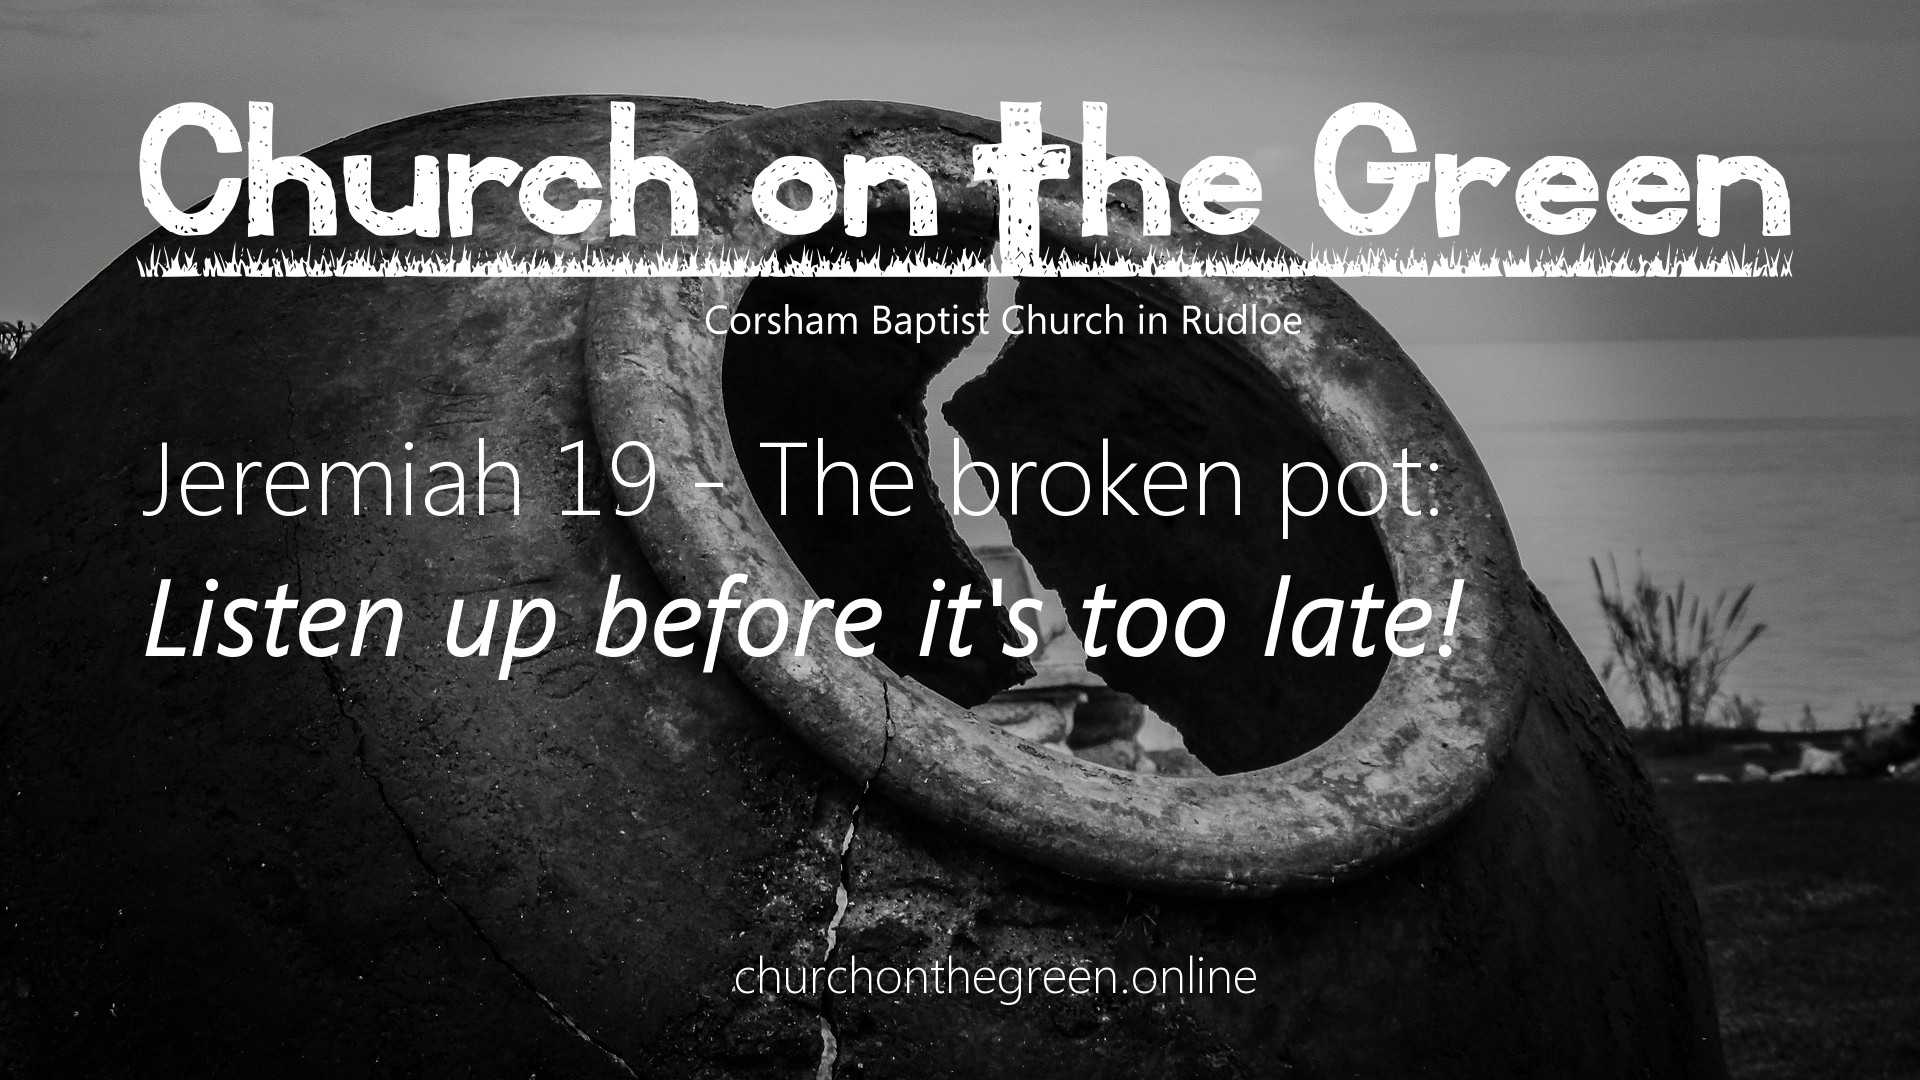 Jeremiah 19: Listen up before it's too late!